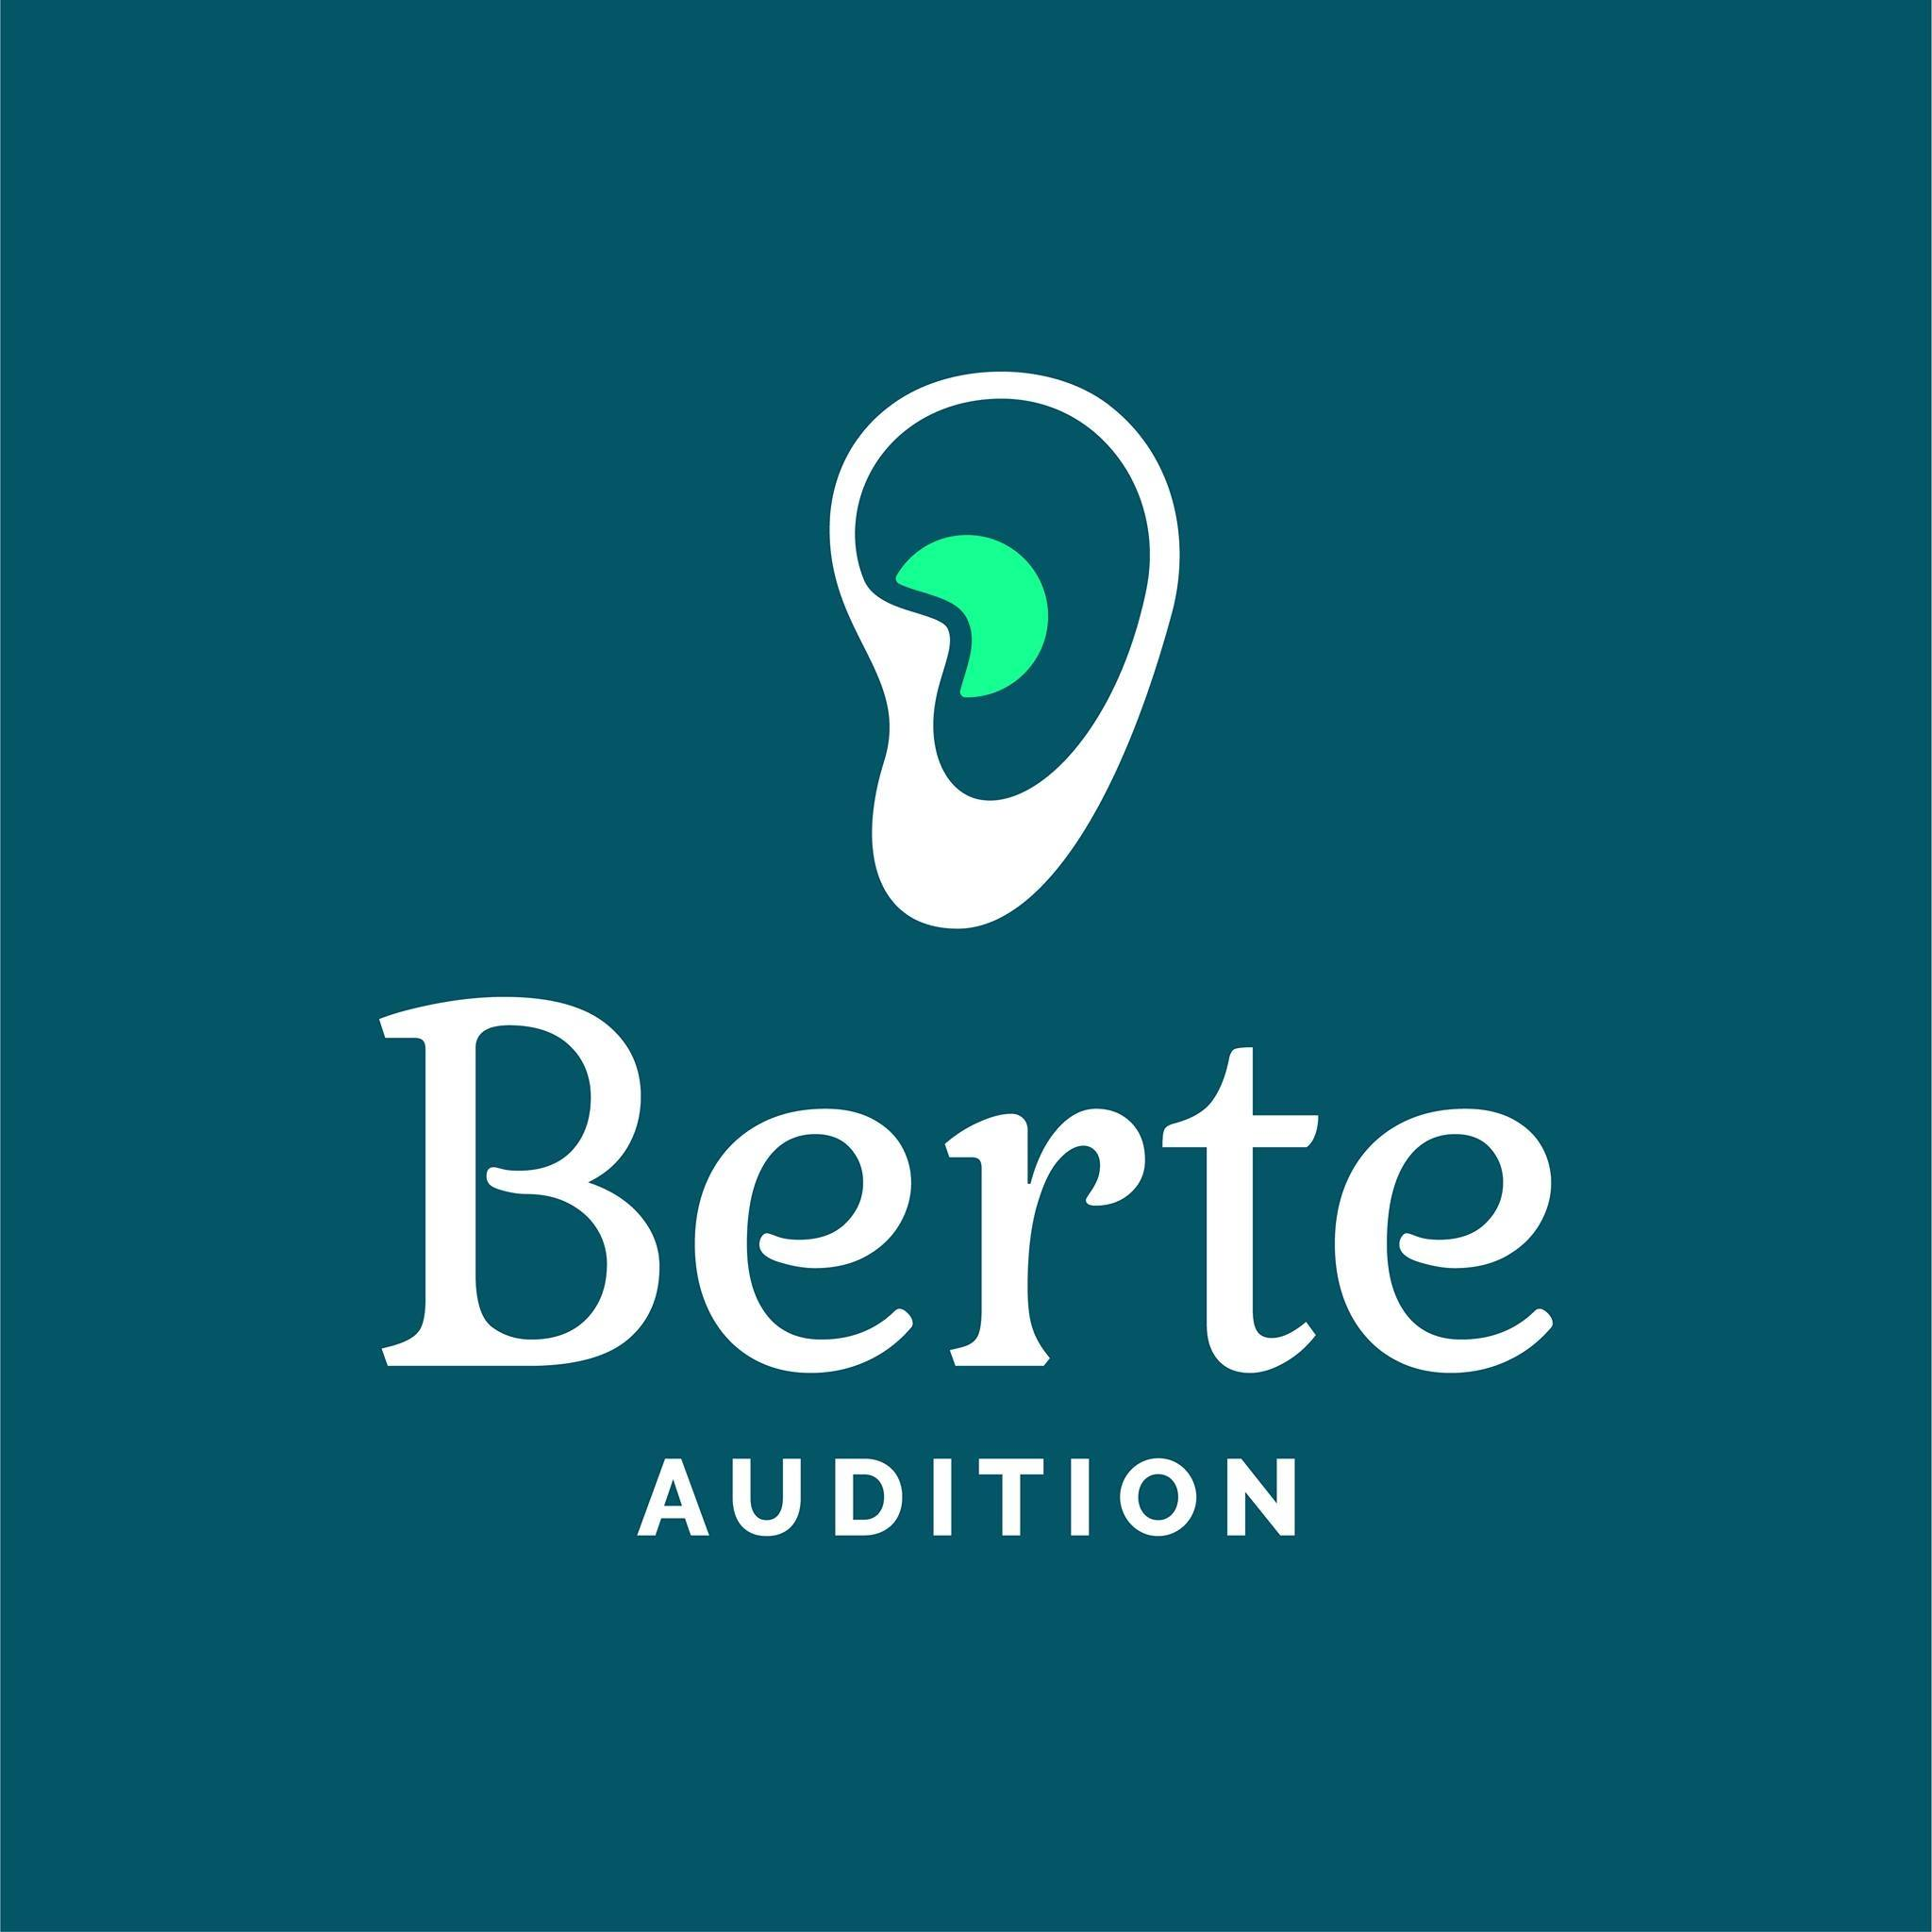 Berte Audition